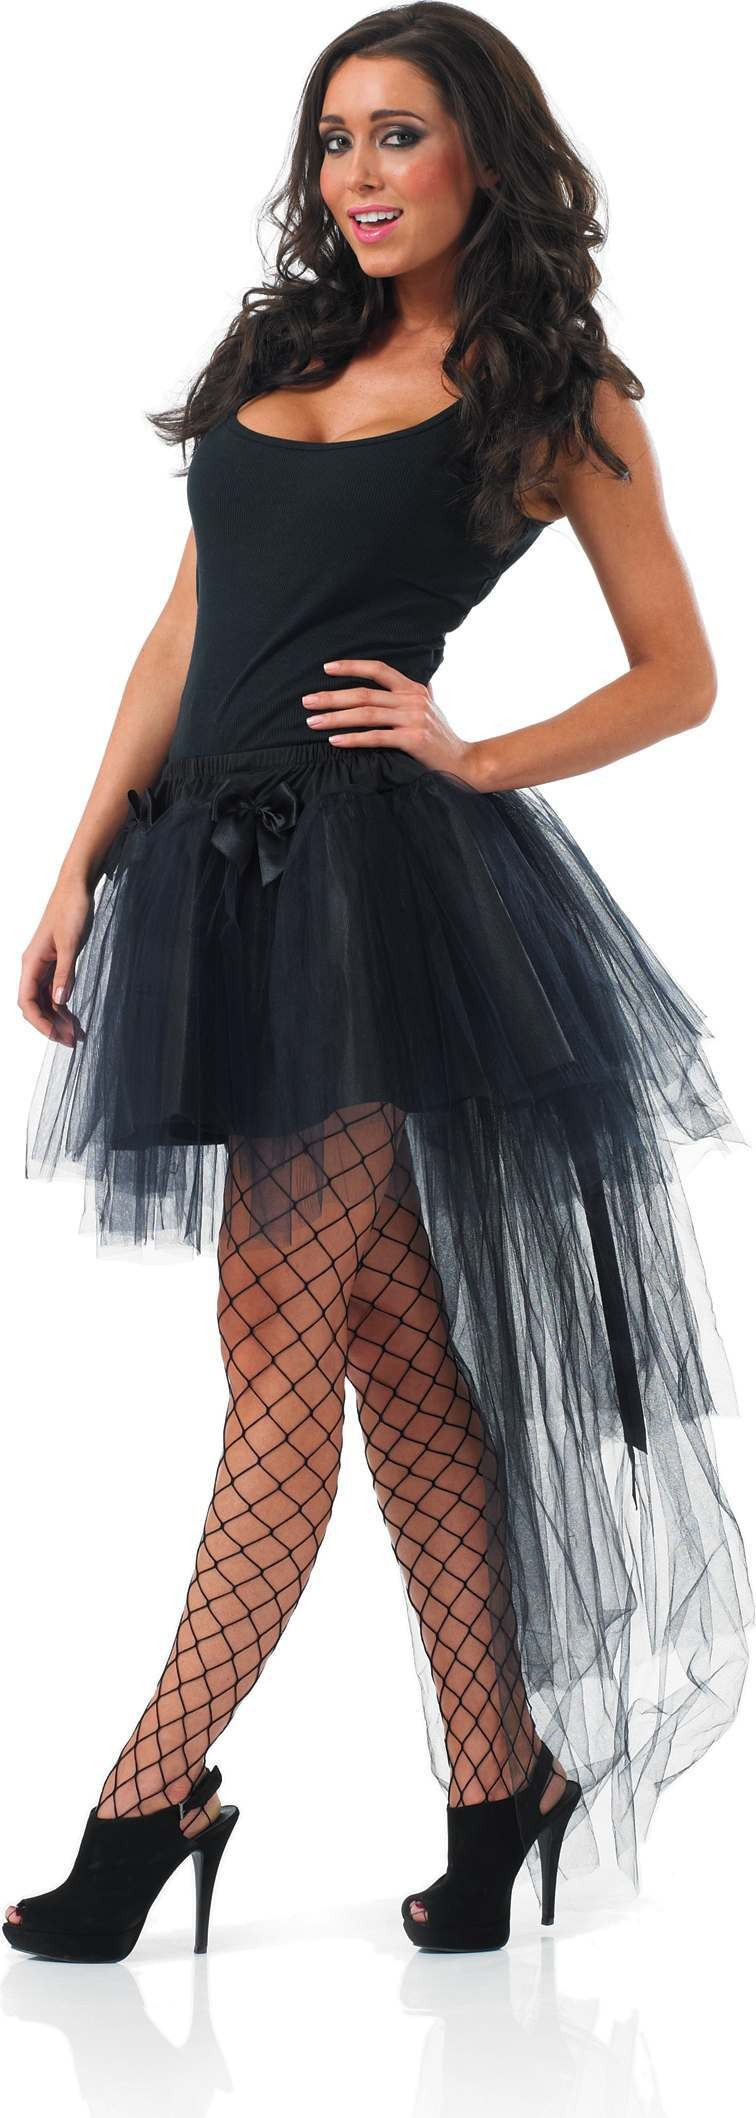 Black Tutu With Tail (Burlesque , Sexy Fancy Dress)